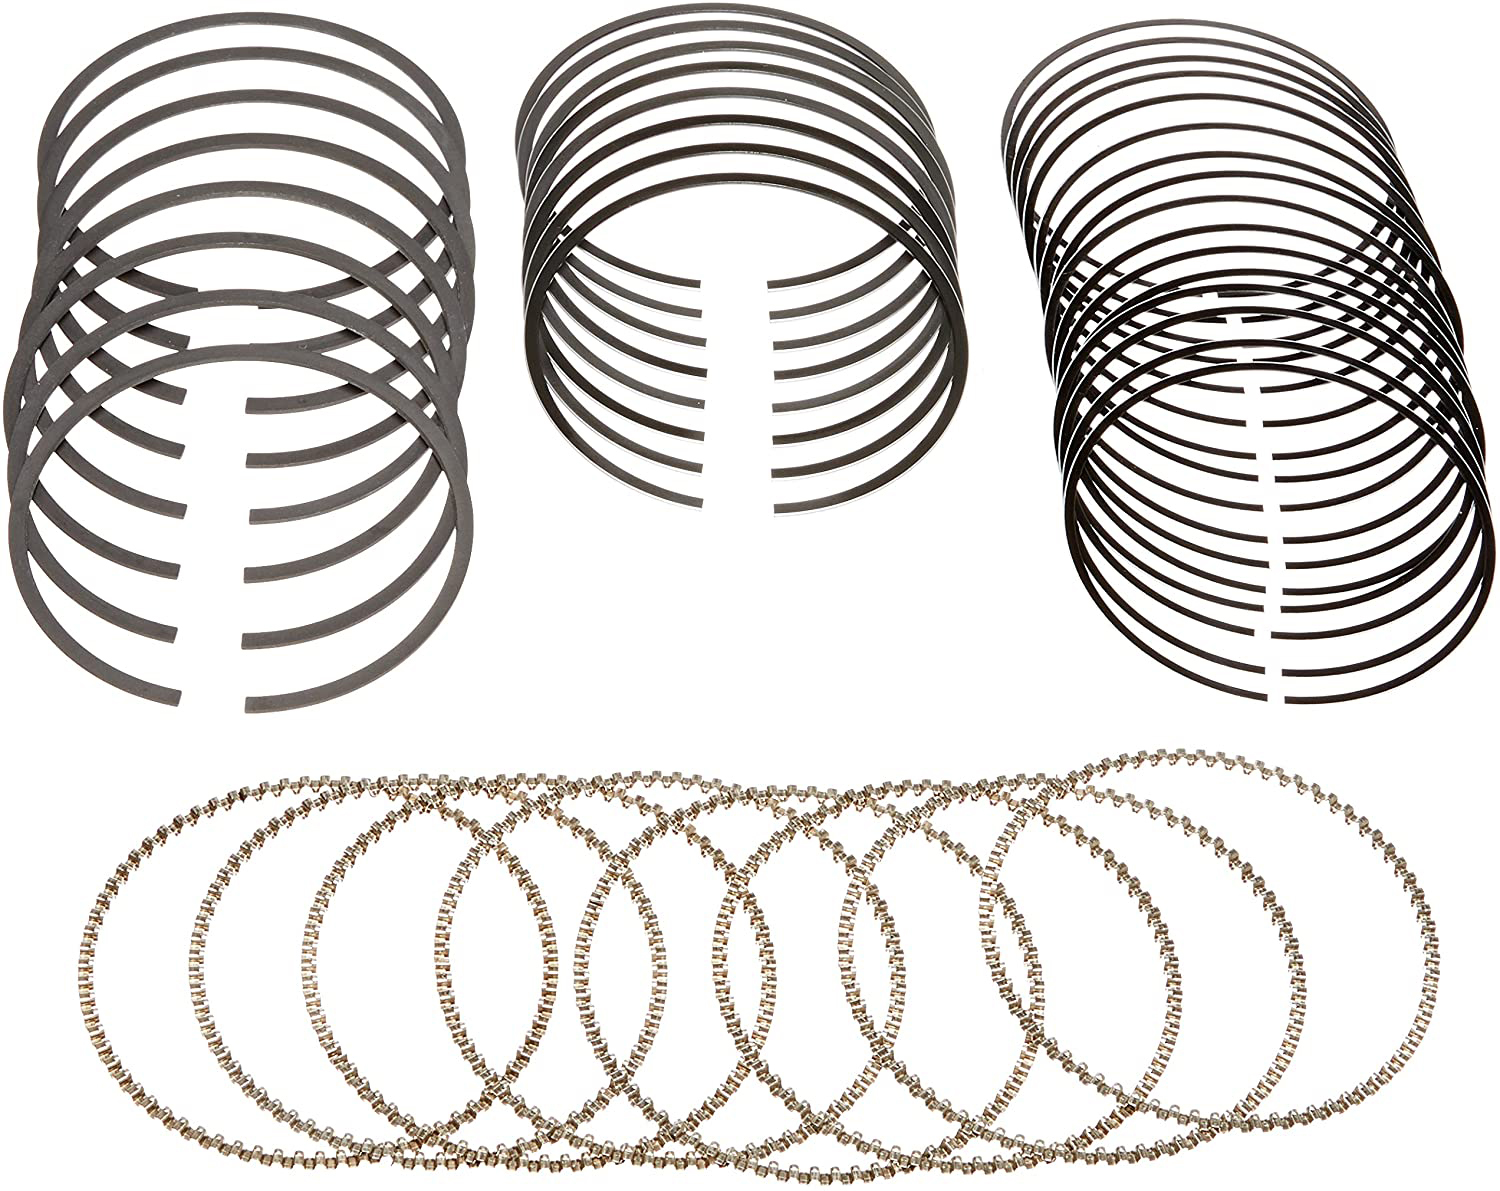 Hastings 2C4998 Piston Rings, 3.701 in Bore, 1.2 x 1.5 x 3.0 mm Thick, Standard Tension, Chrome, 8-Cylinder, Kit